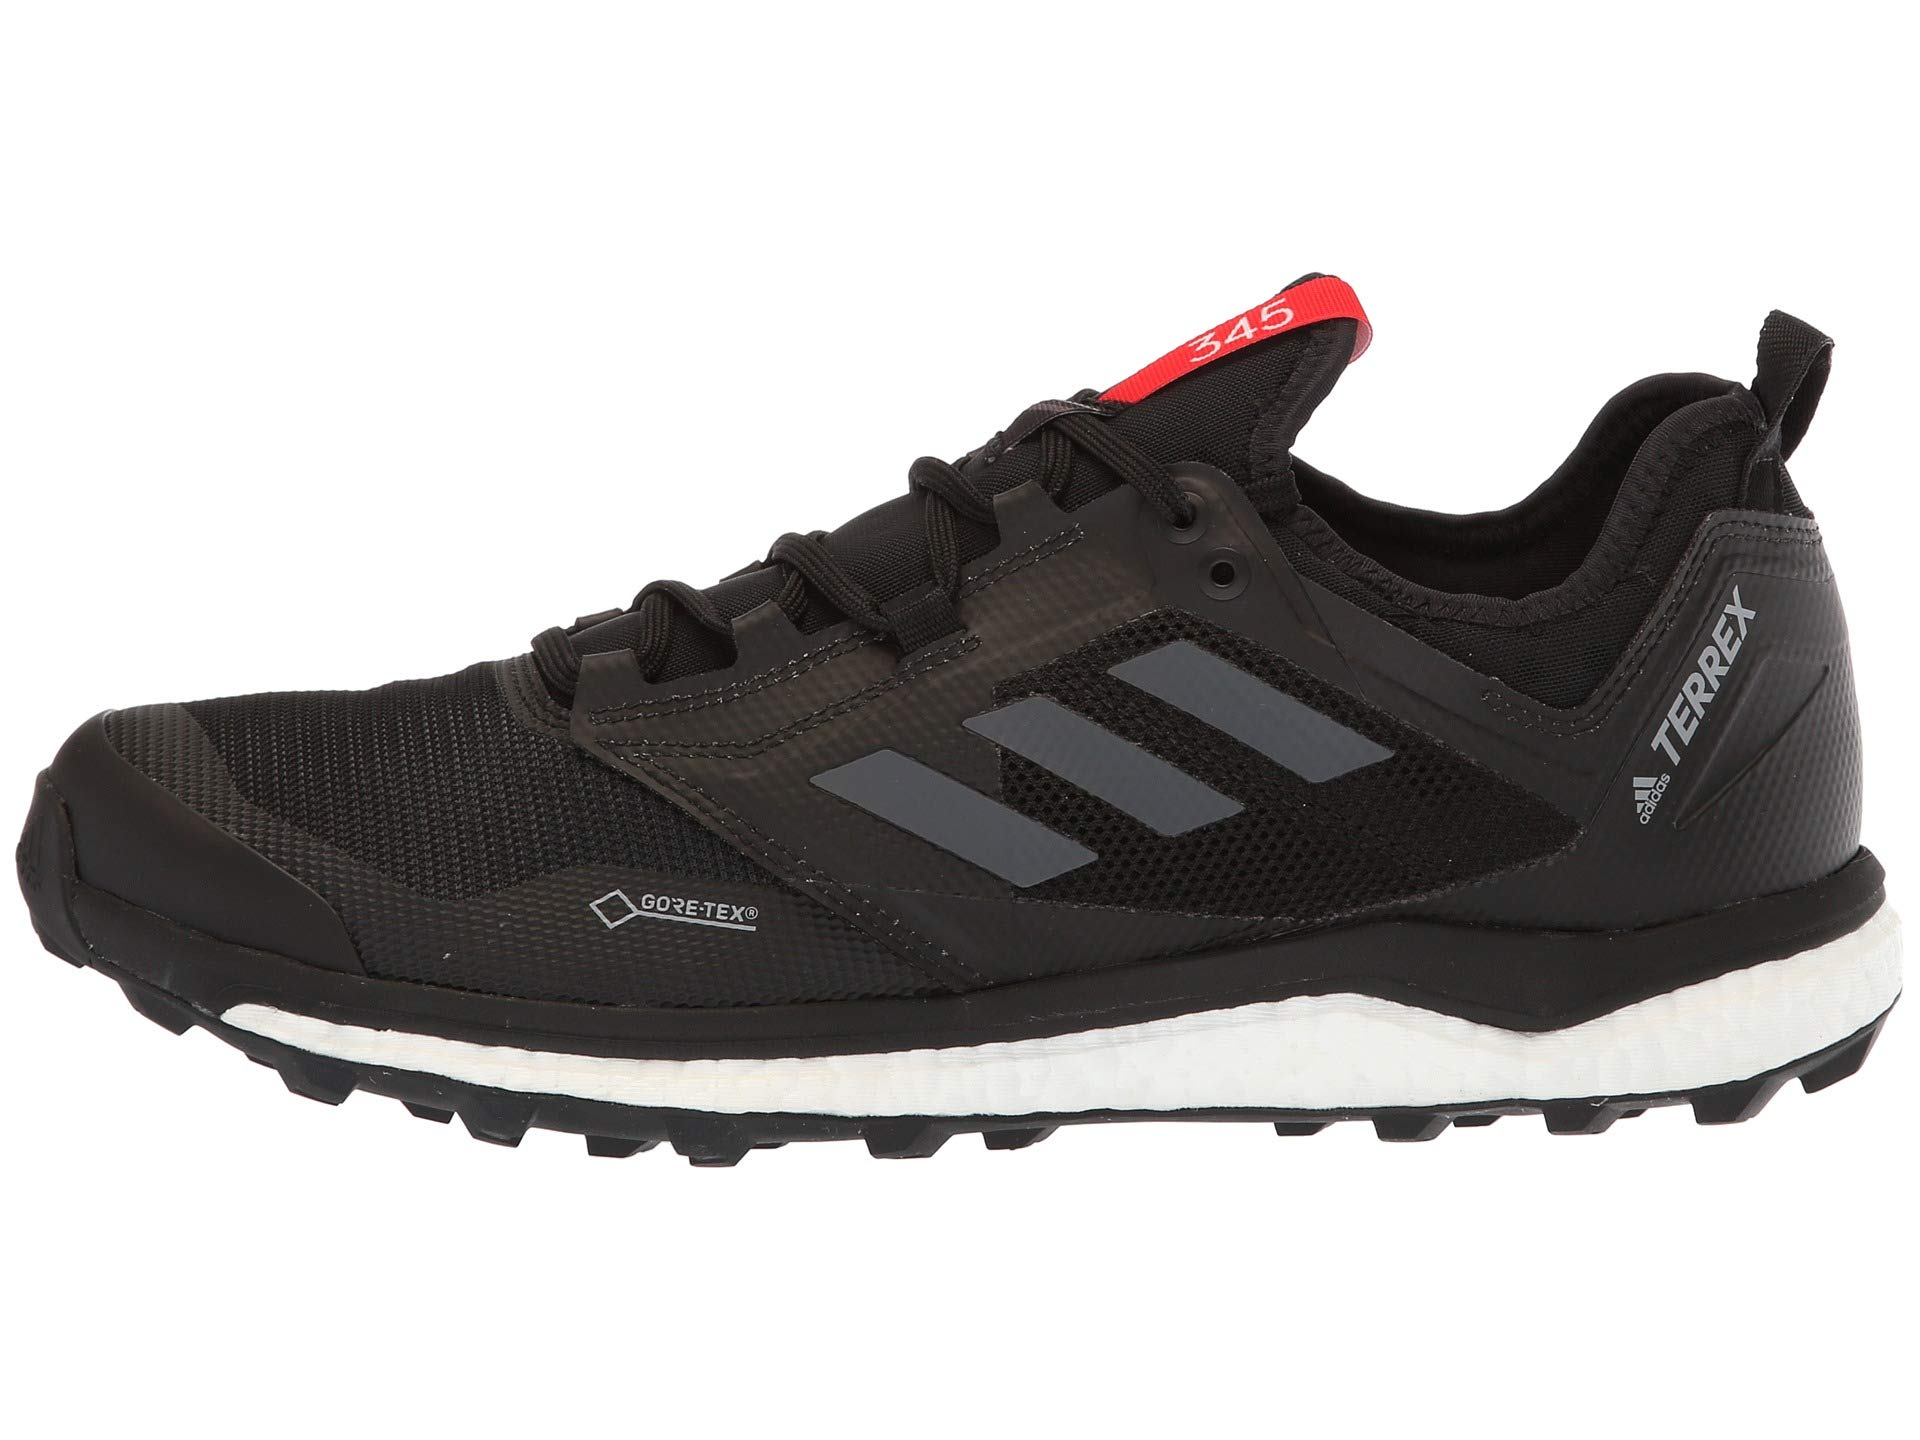 new styles a1539 8f809 Best Adidas Running Shoes  Adidas Shoe Reviews 2018